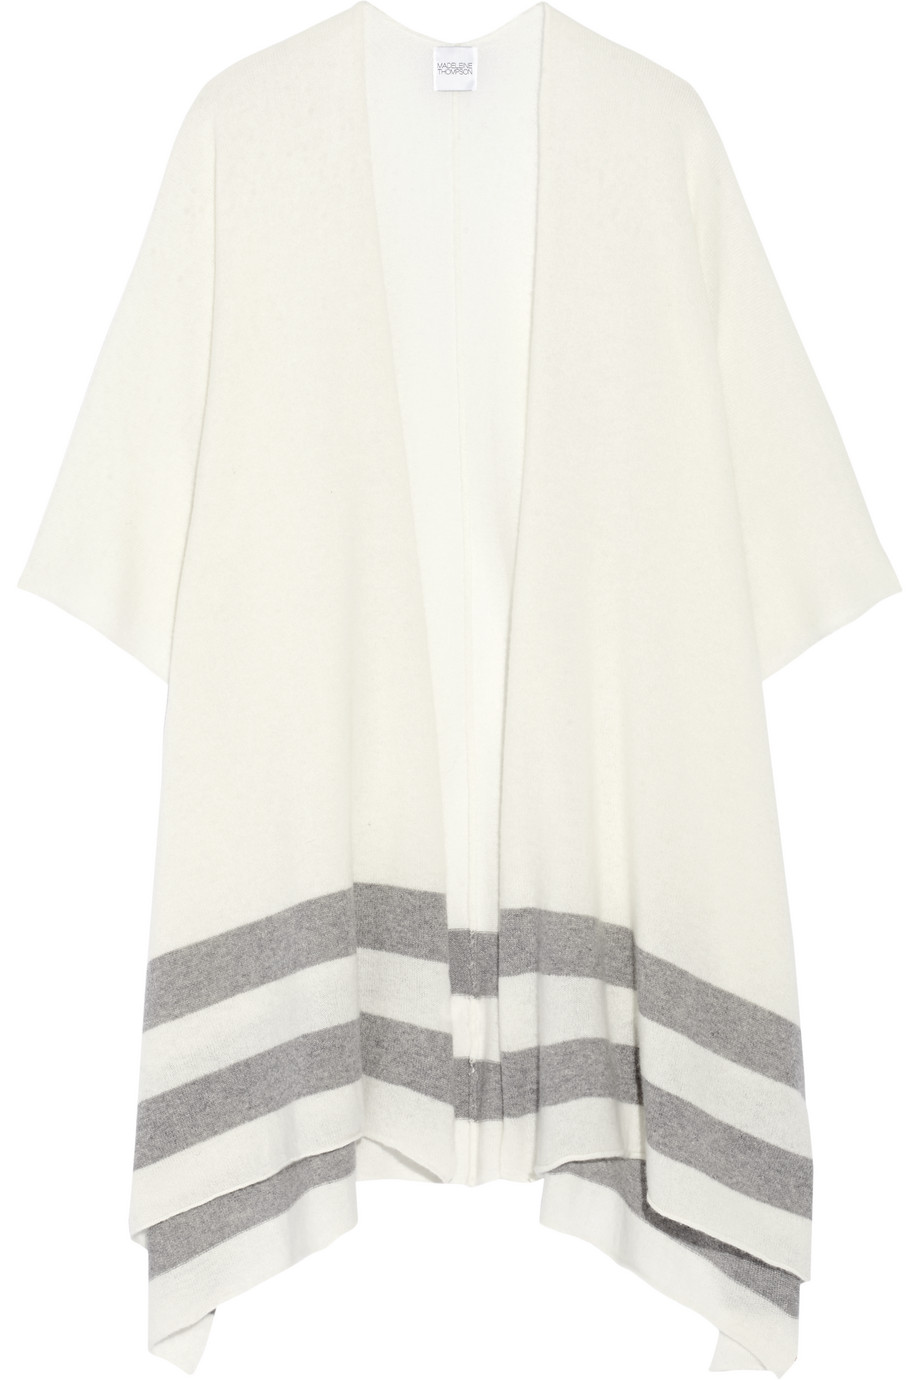 Striped Cashmere Wrap, Madeleine Thompson, Cream, Women's